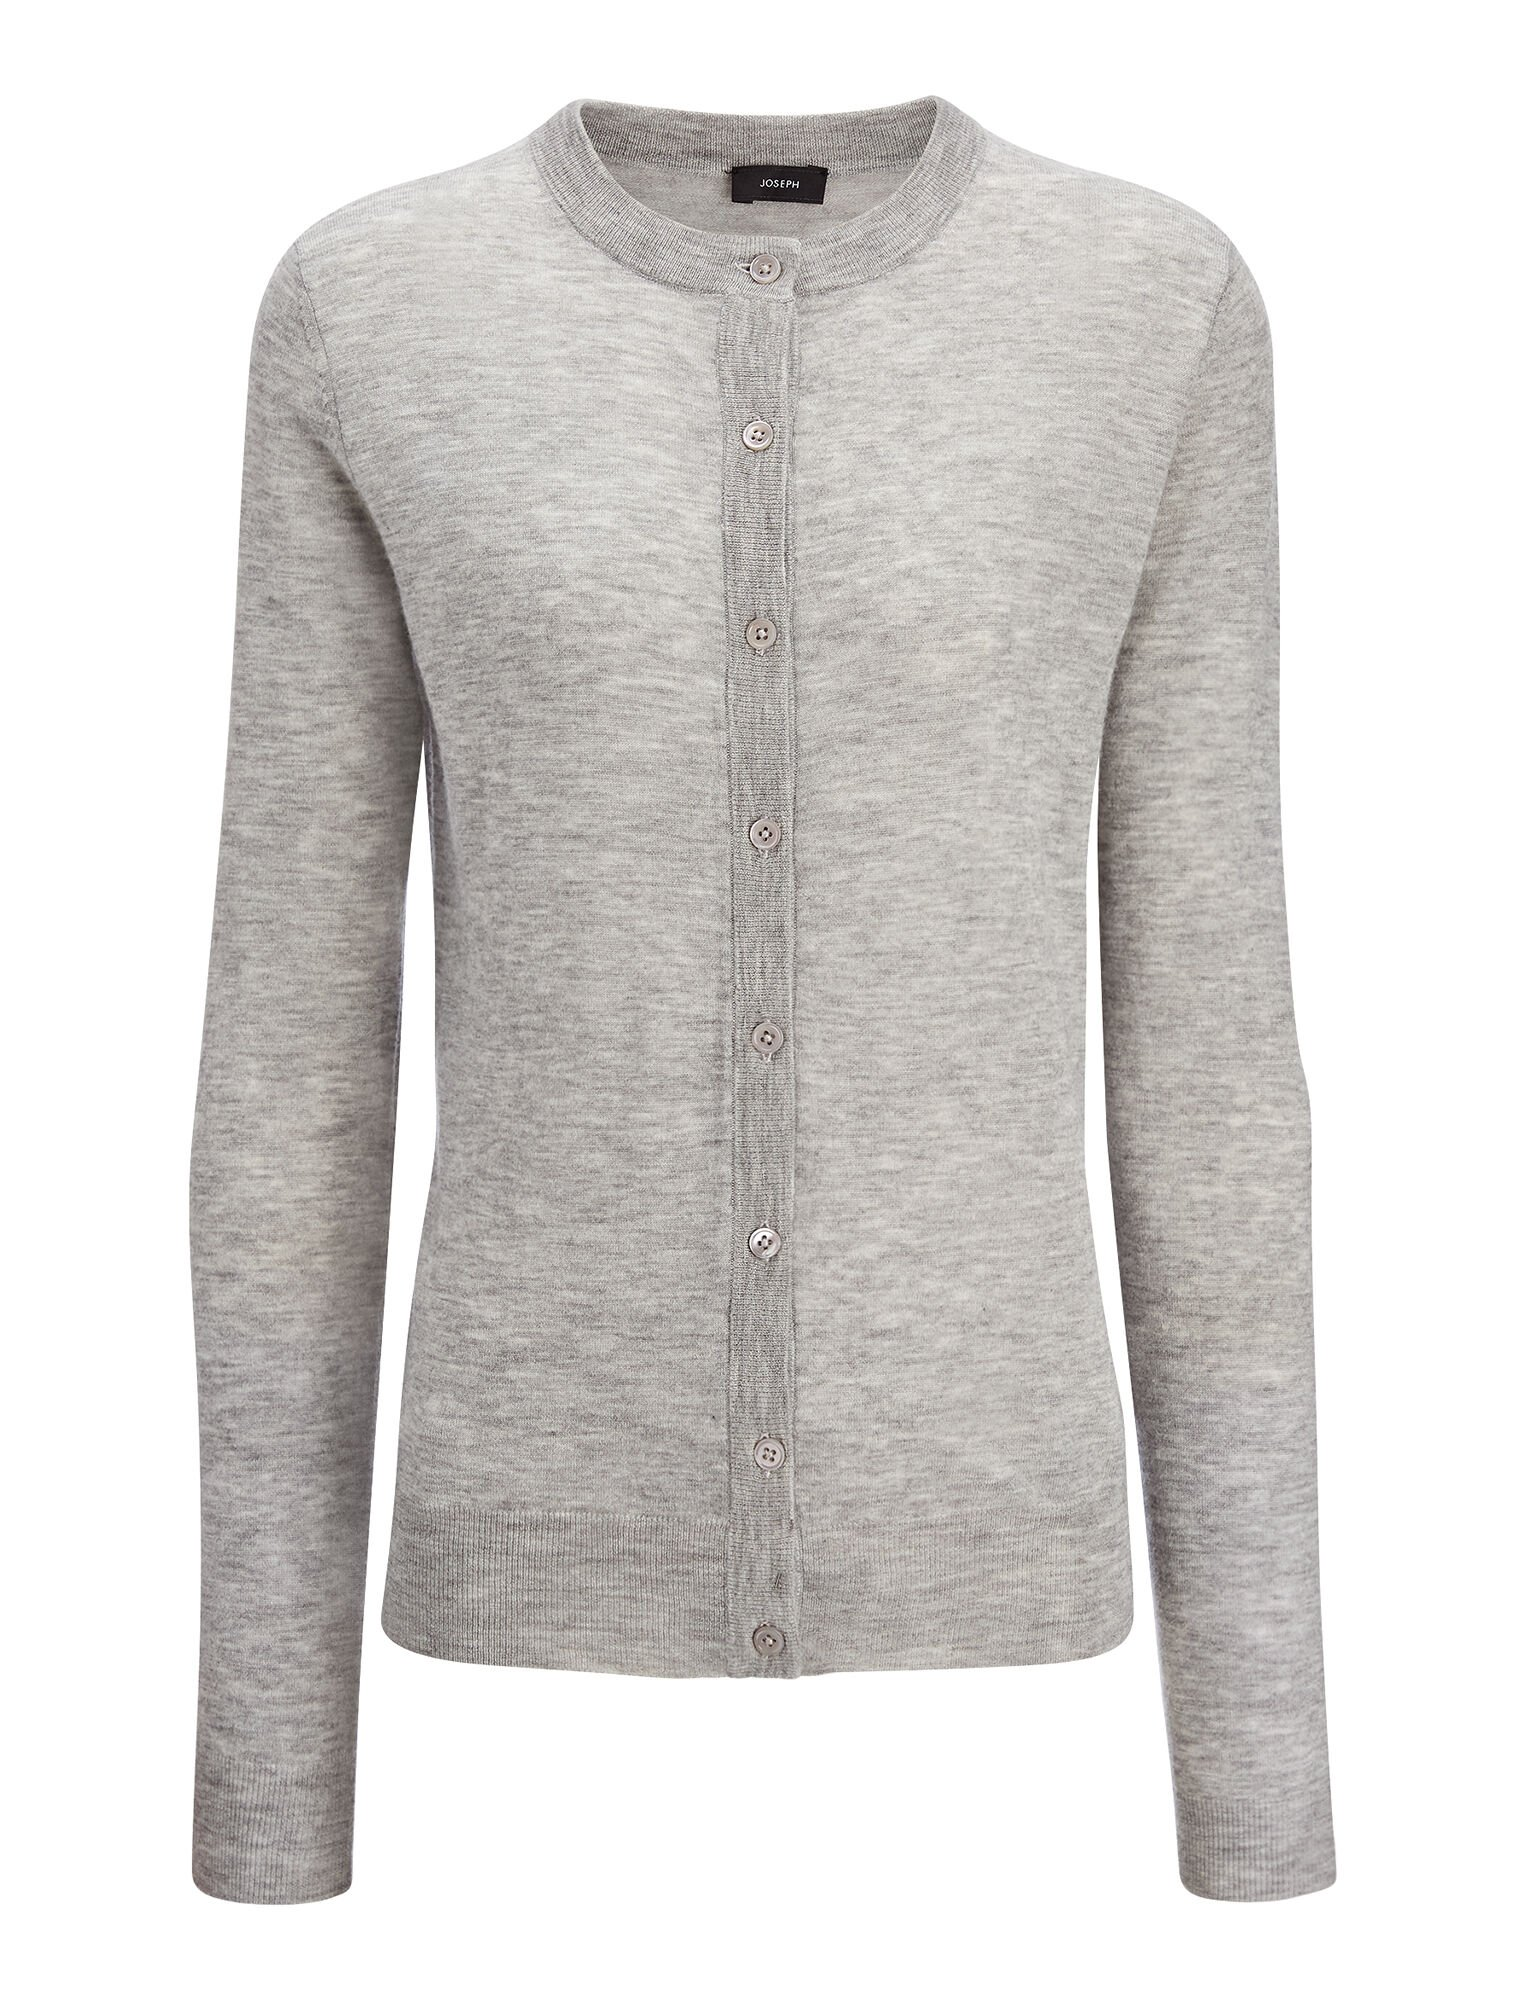 Joseph, Cashair Cardigan, in GREY CHINE